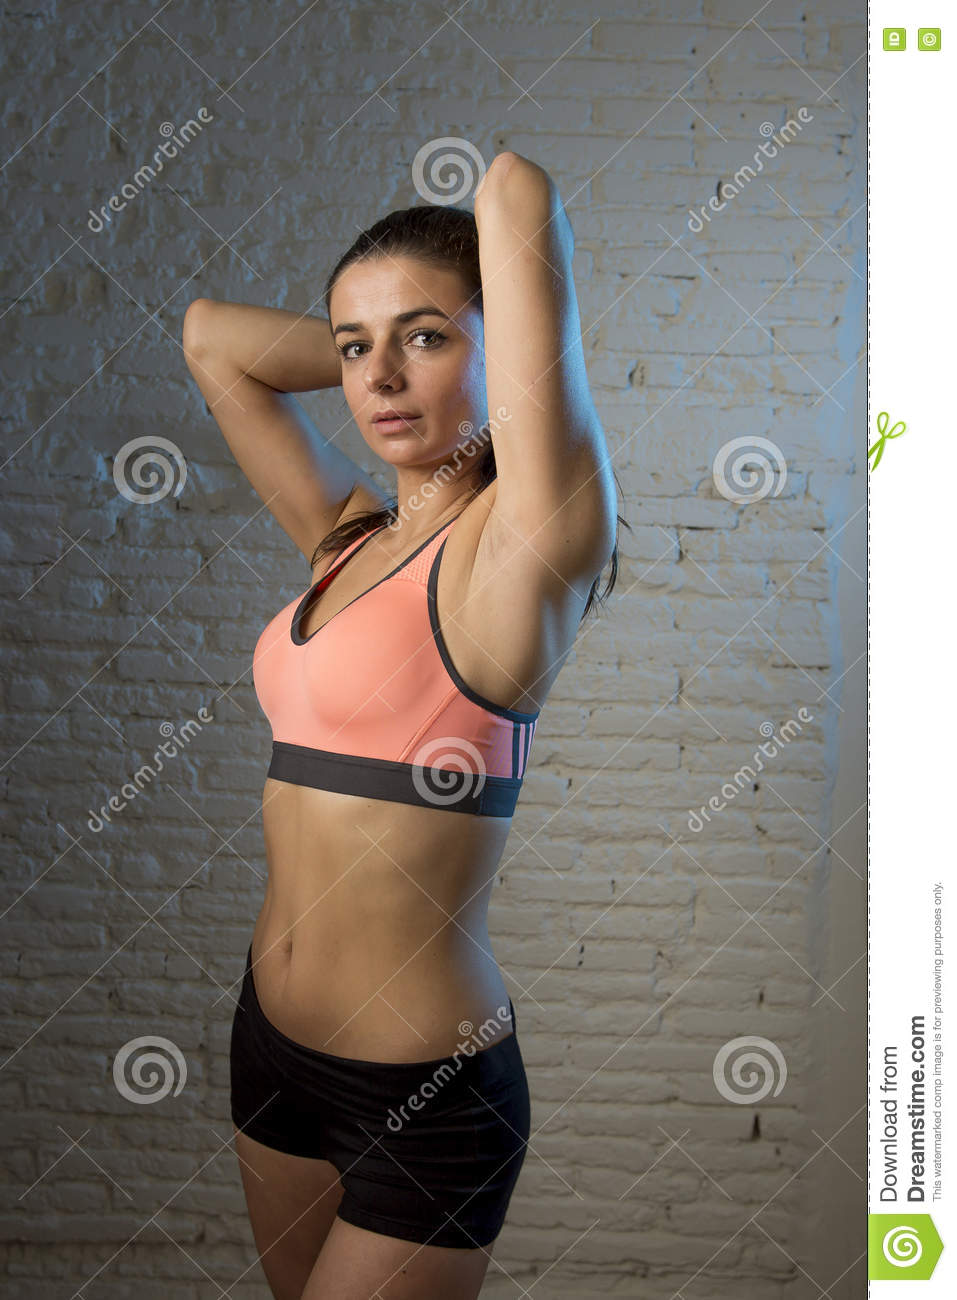 dd6c0b396 Young beautiful and woman in fitness top and shorts with perfect abdomen  posing on dim light interior background in healthy lifestyle sport and diet  concept